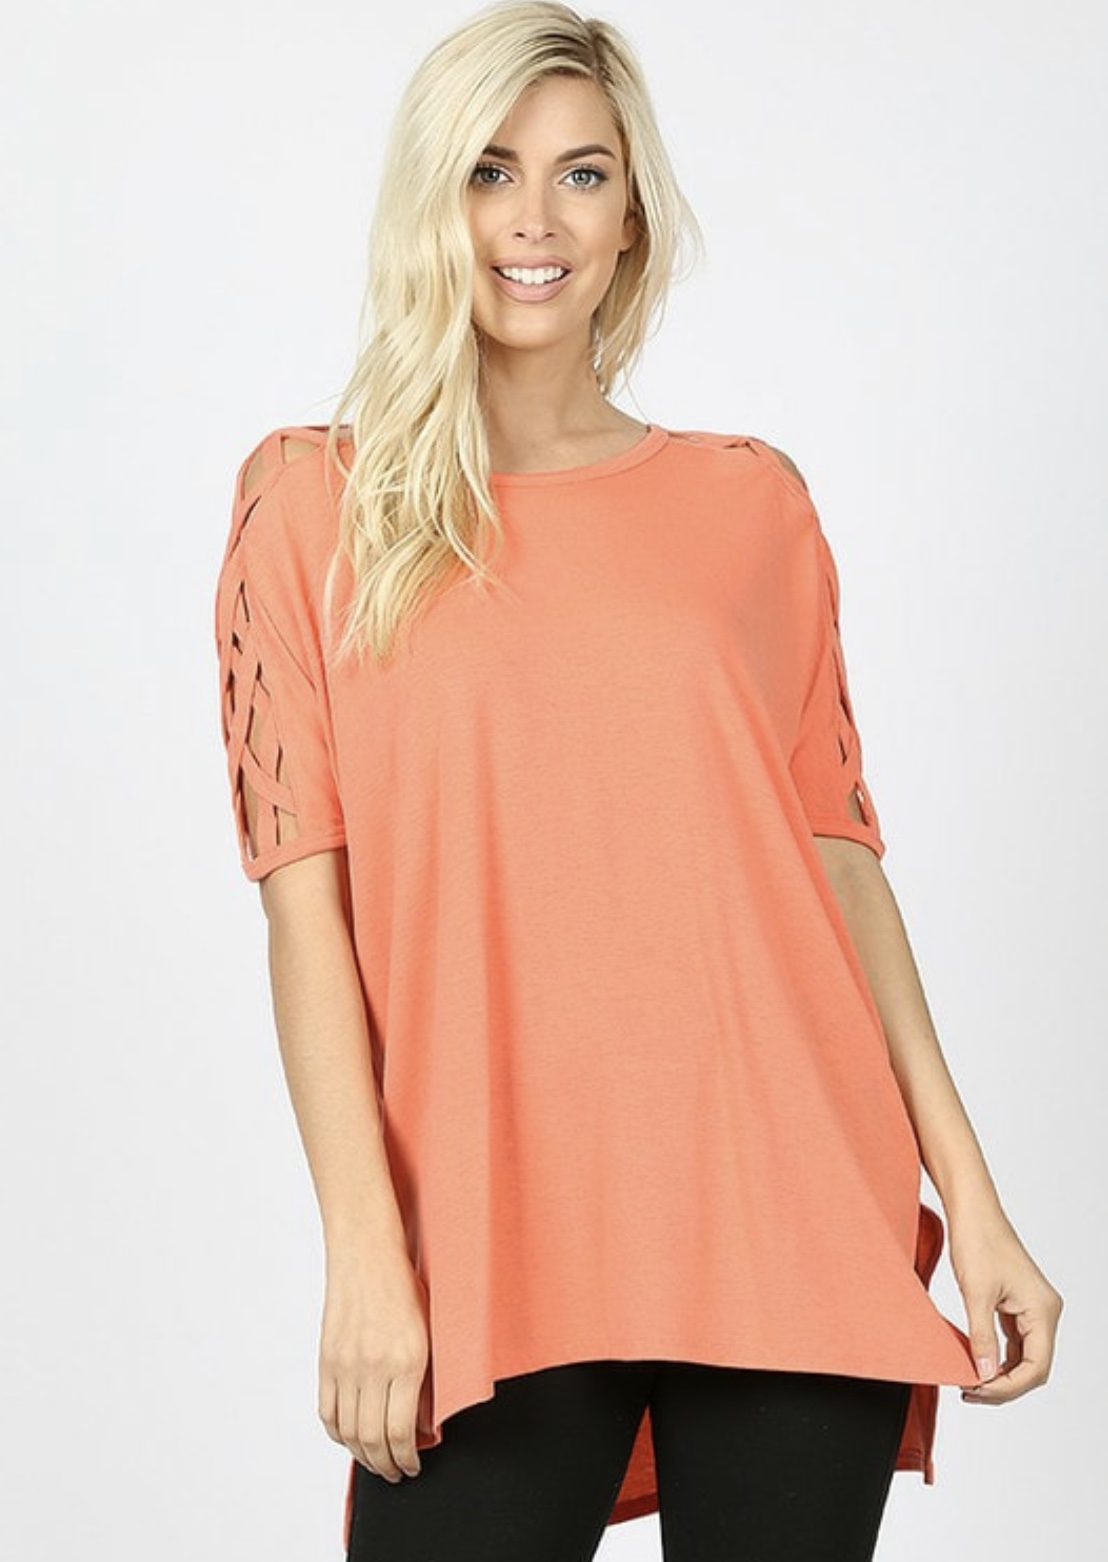 CORAL CRISS CROSS SHIRT (ALSO COMES IN MUSTARD)